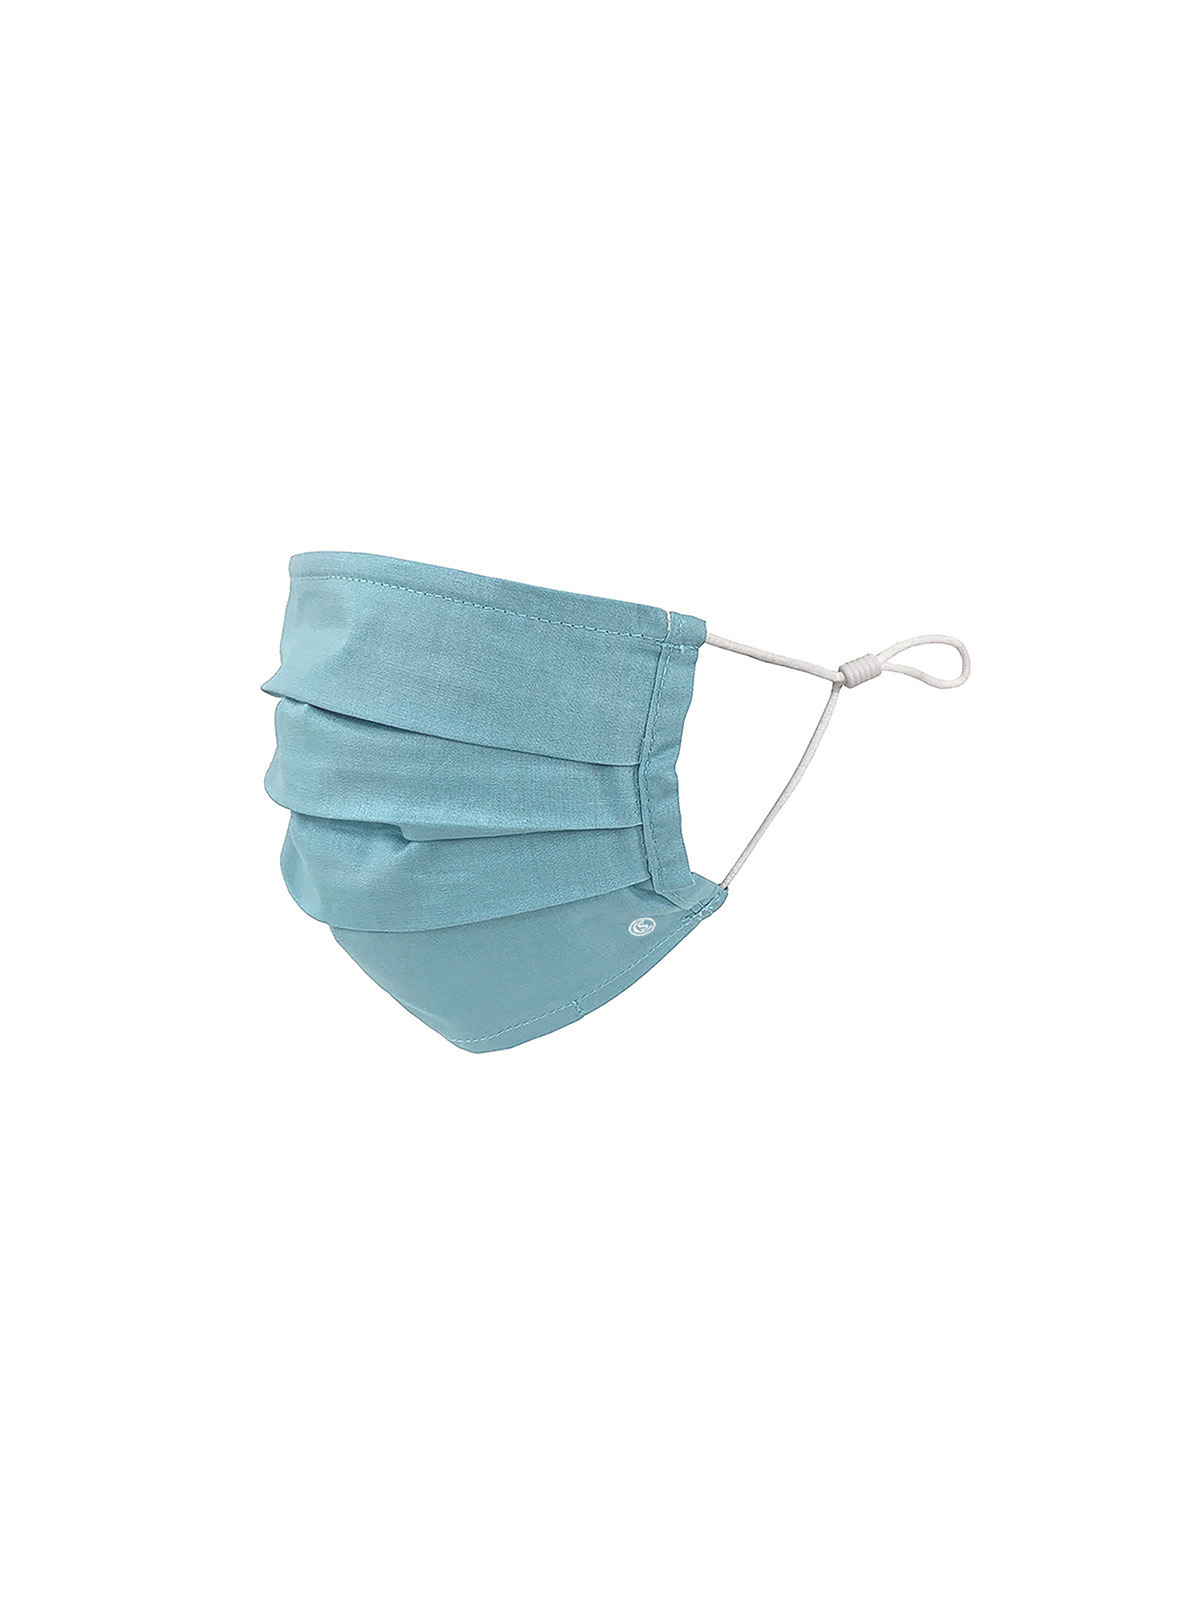 SOLID BLUE PLEATED MASK 6-PACK